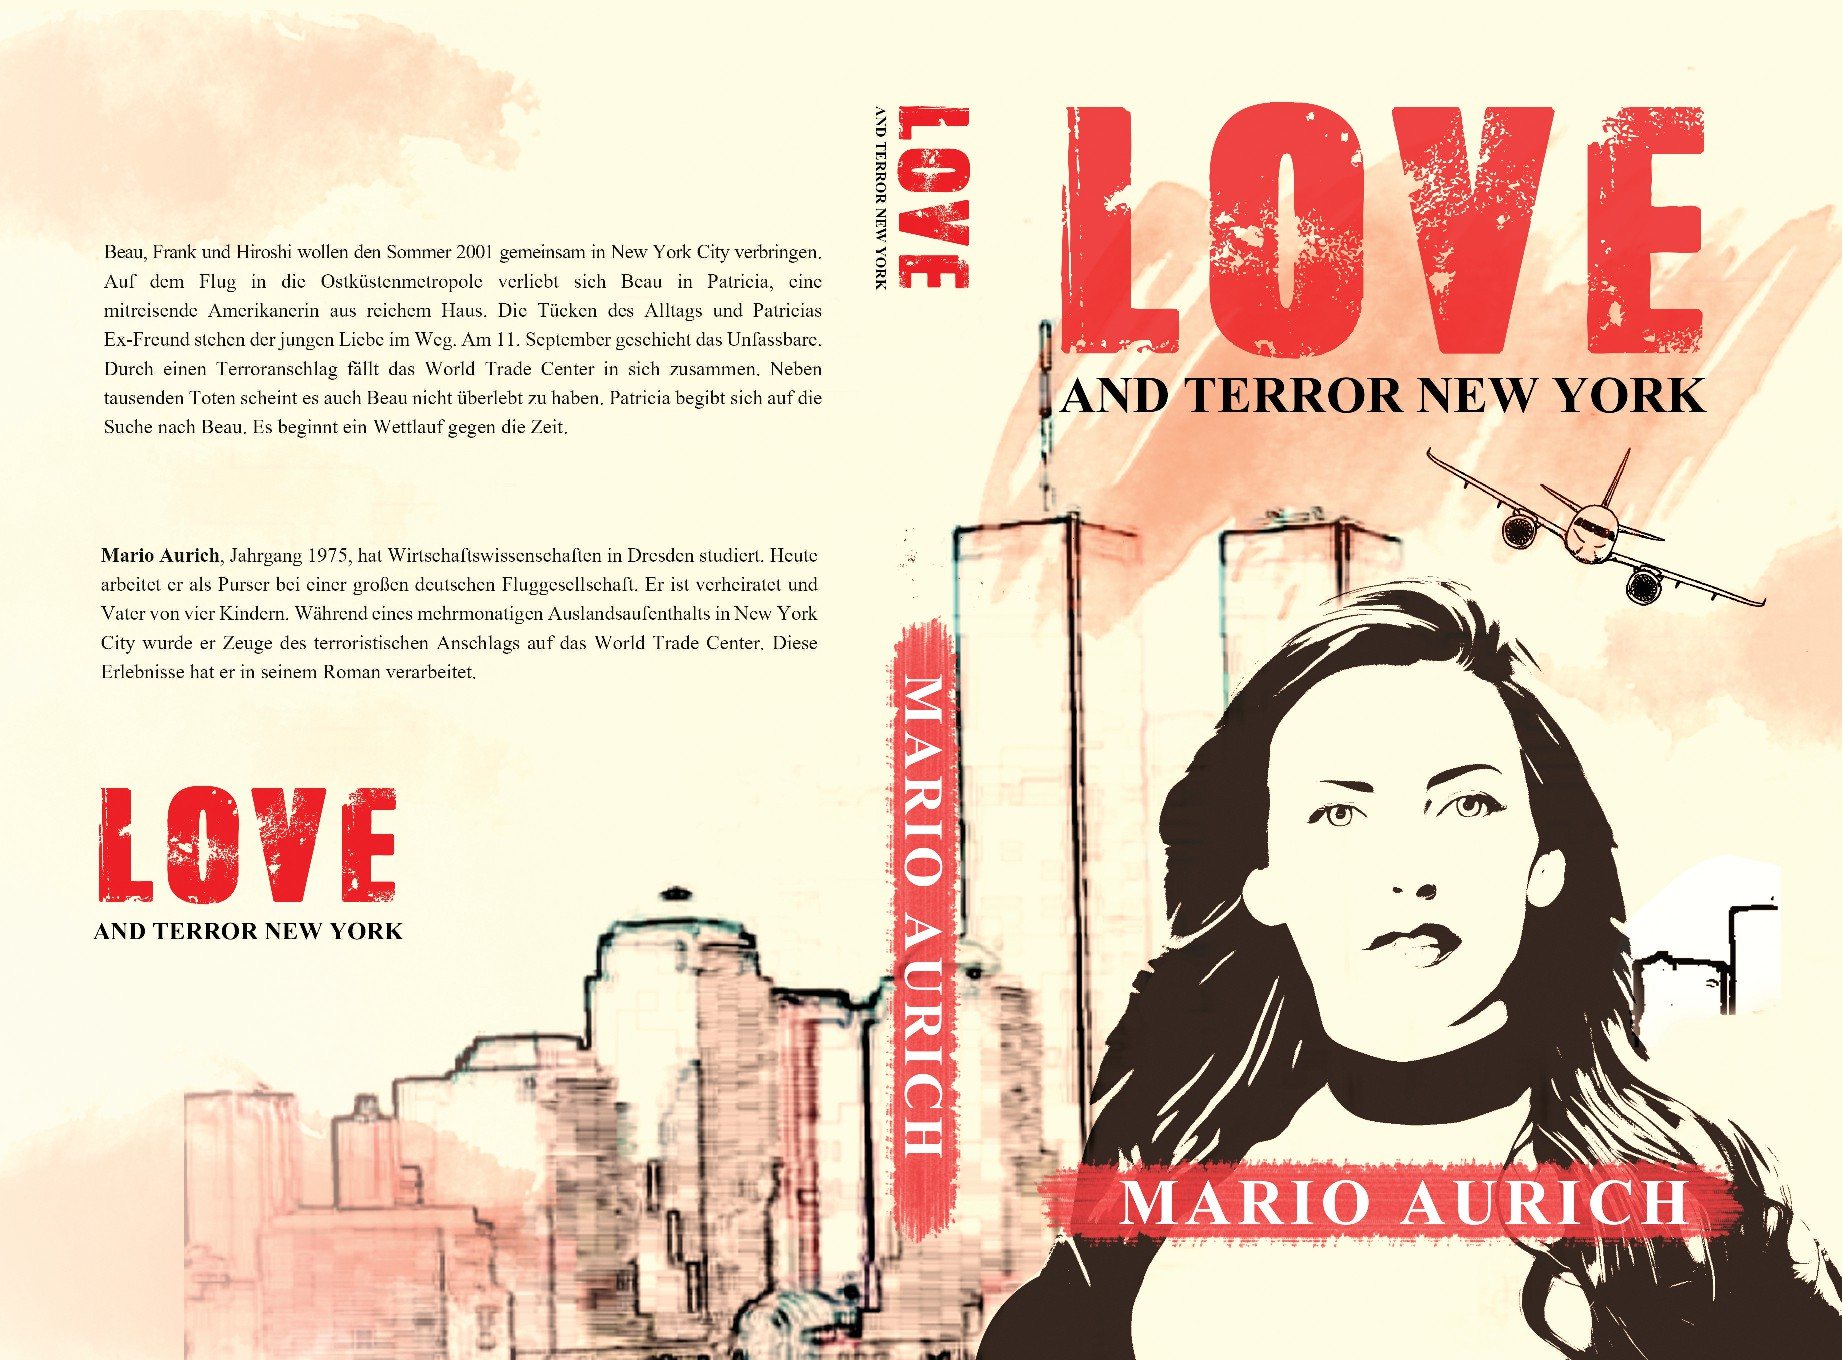 """Create a book cover for a love story: """"LOVE AND TERROR NEW YORK""""."""